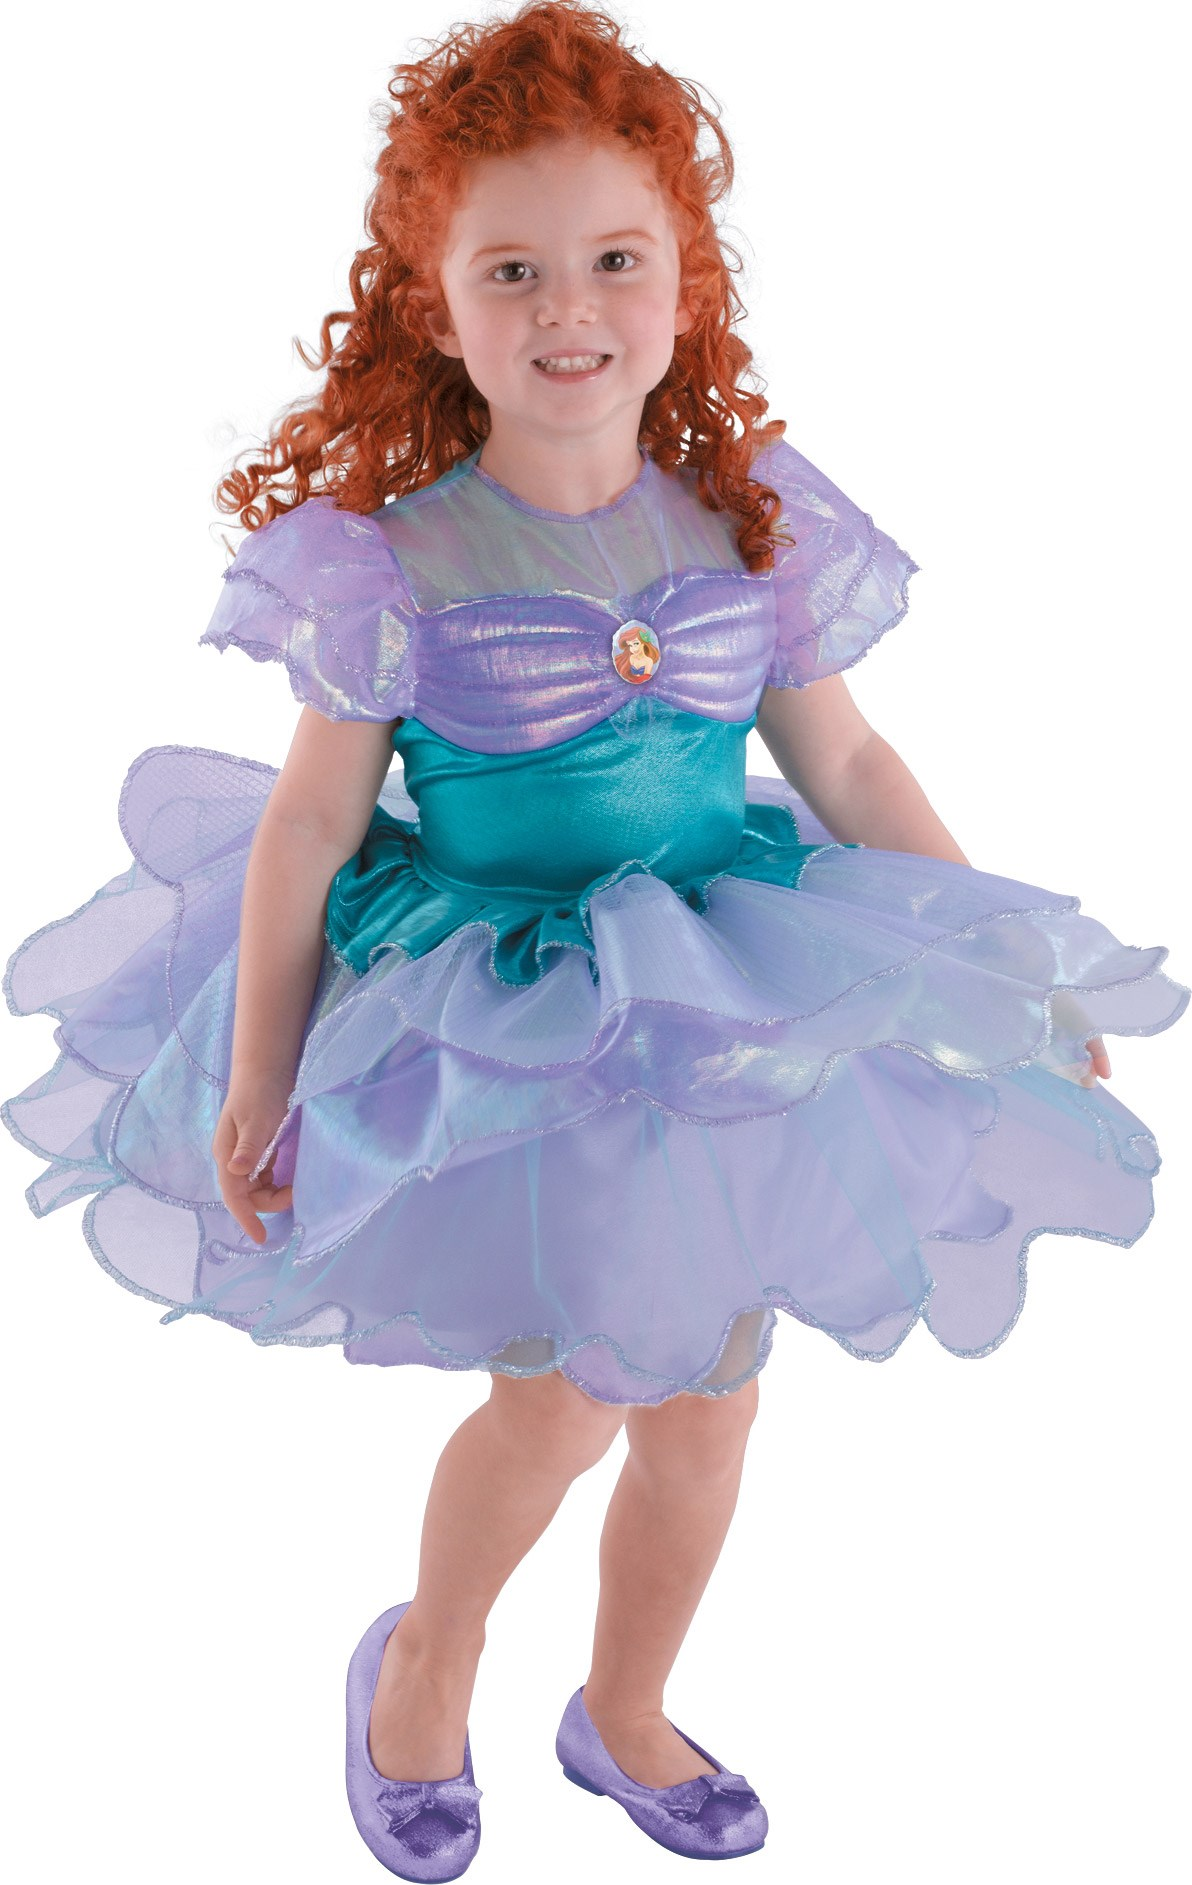 Disney The Little Mermaid Ariel Ballerina Toddler / Child Costume Child (4-6x)